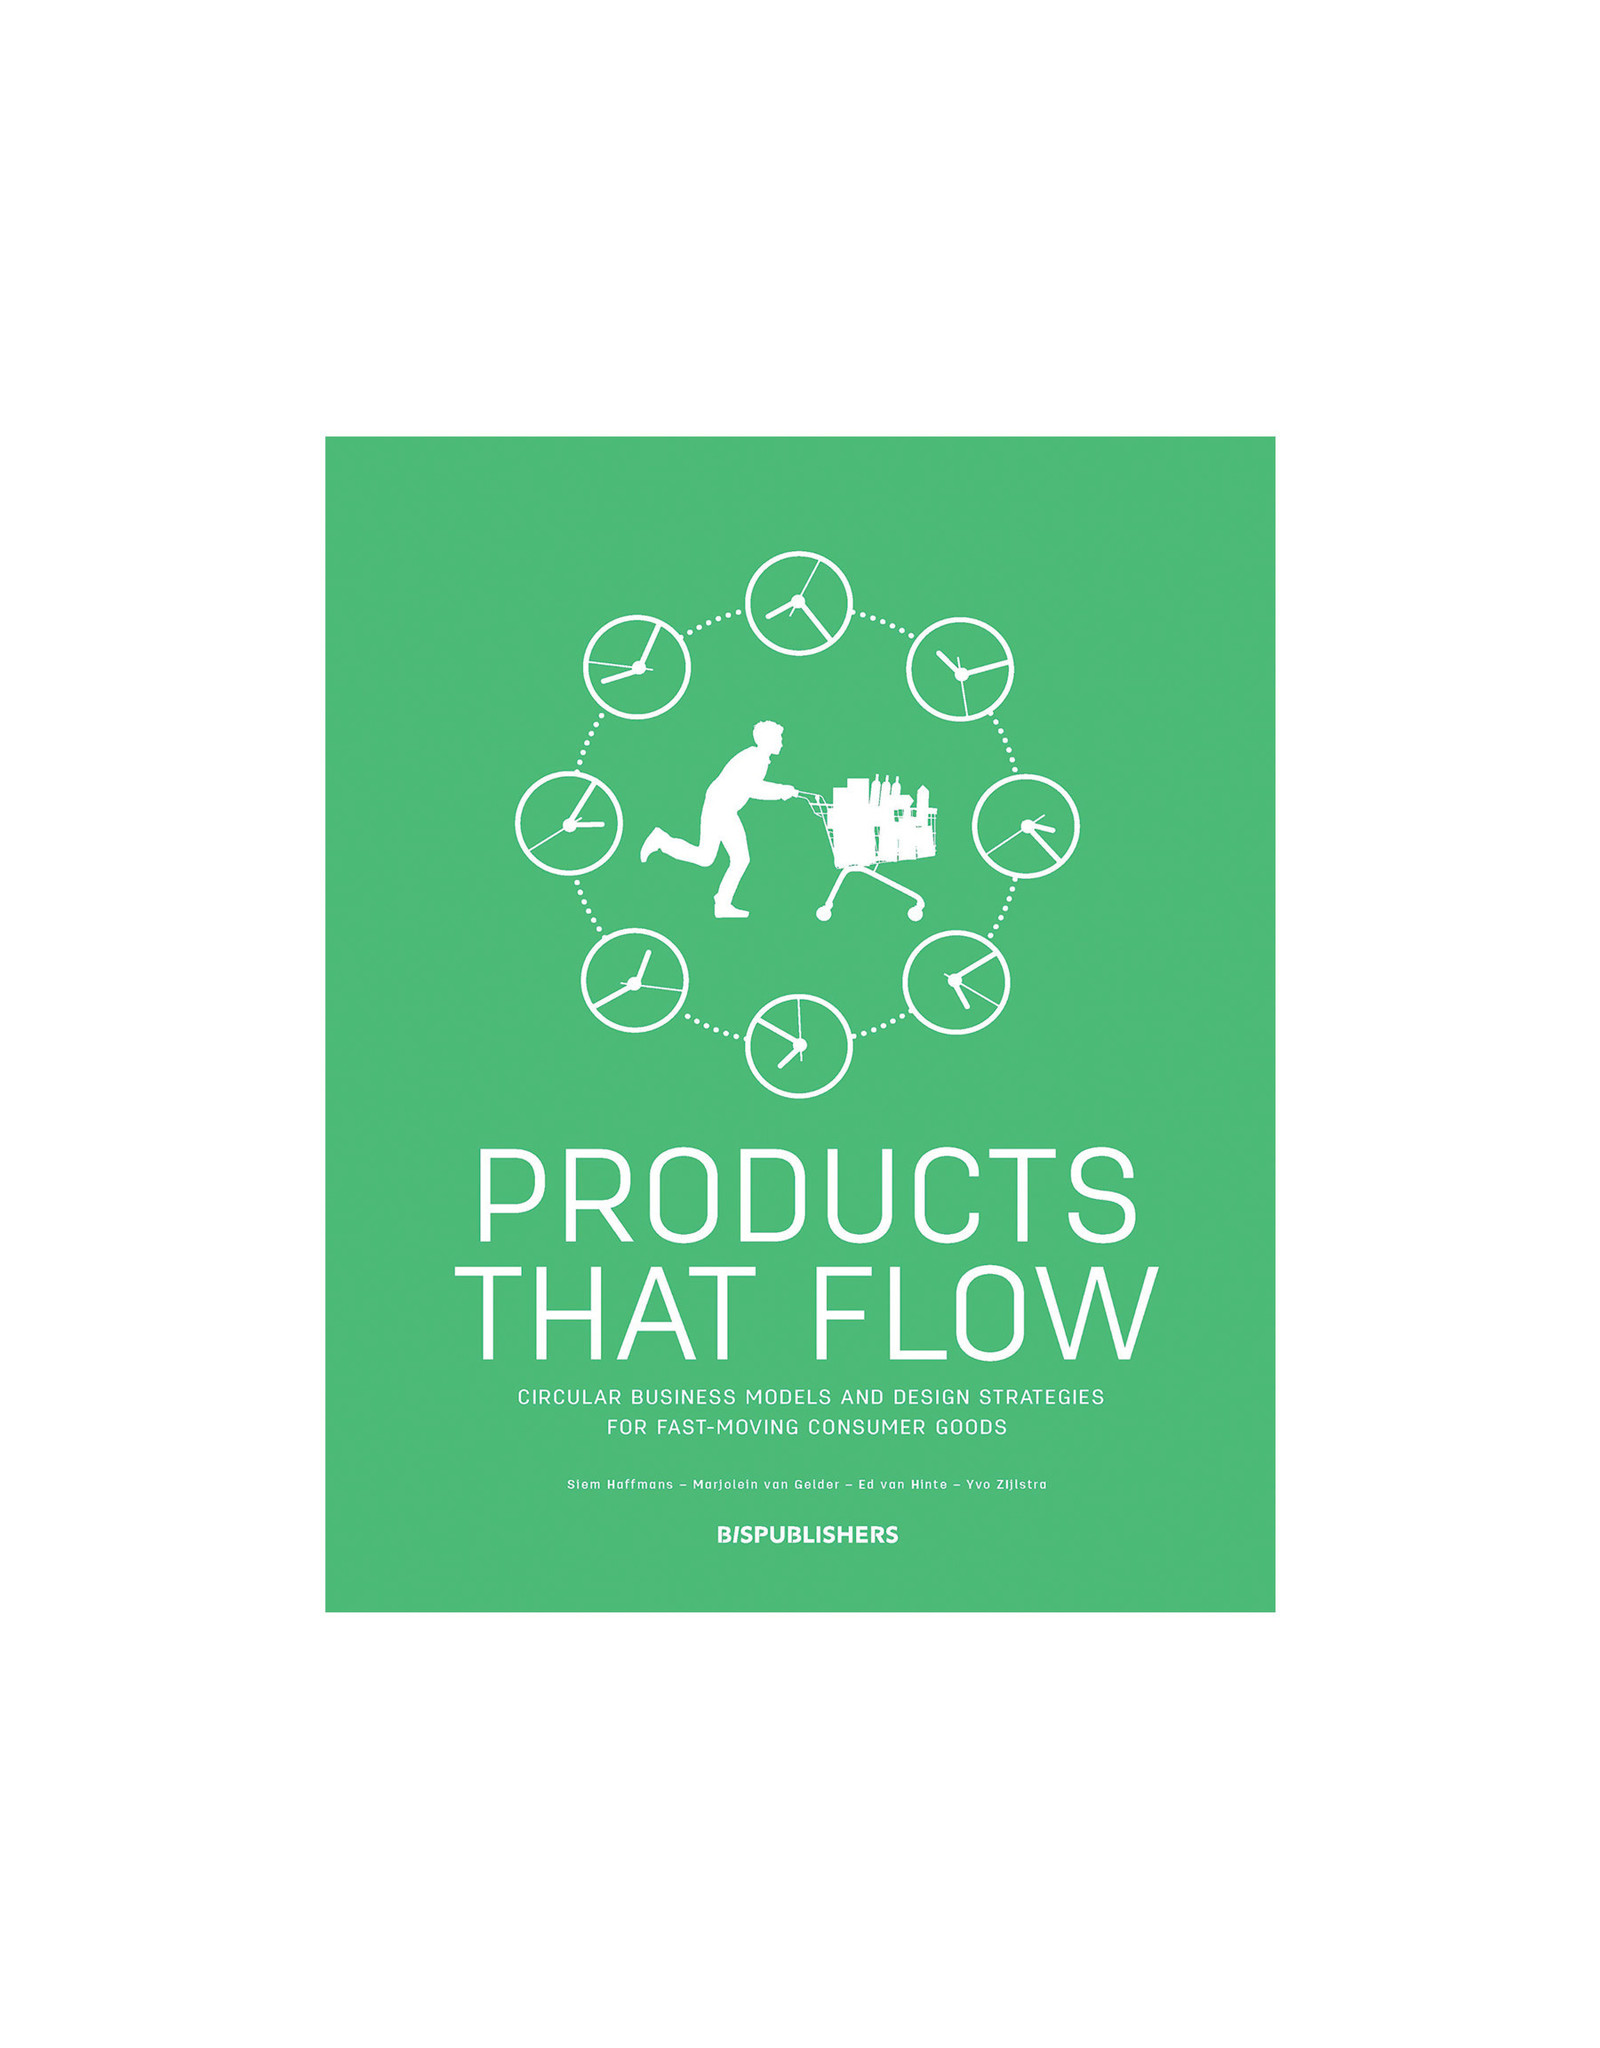 Products That Flow: Circular Business Models and Design Strategies for Fast Moving Consumer Goods